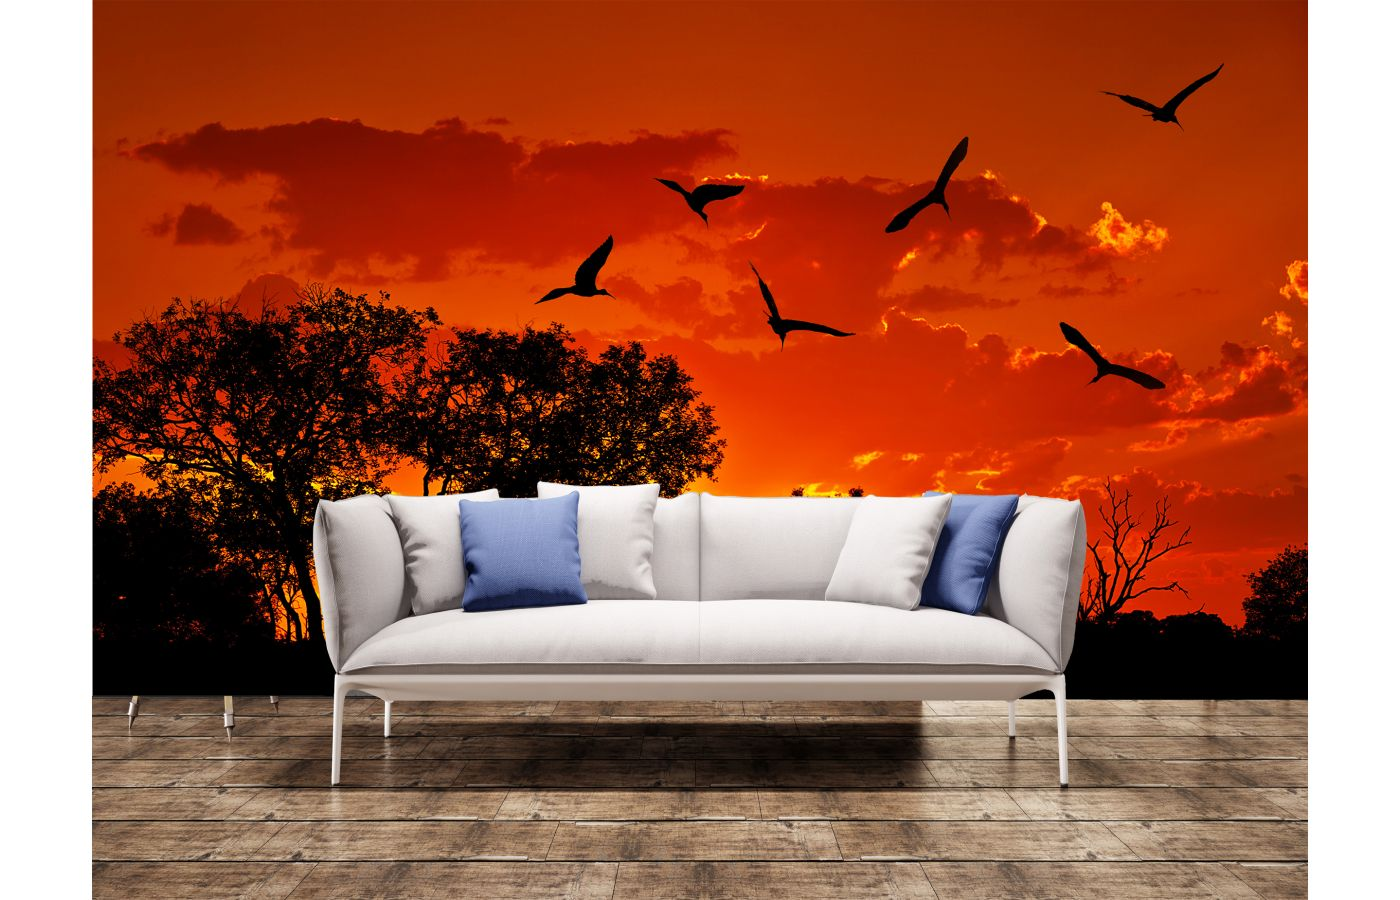 Landscape Of Africa With Warm Sunset Wall Mural